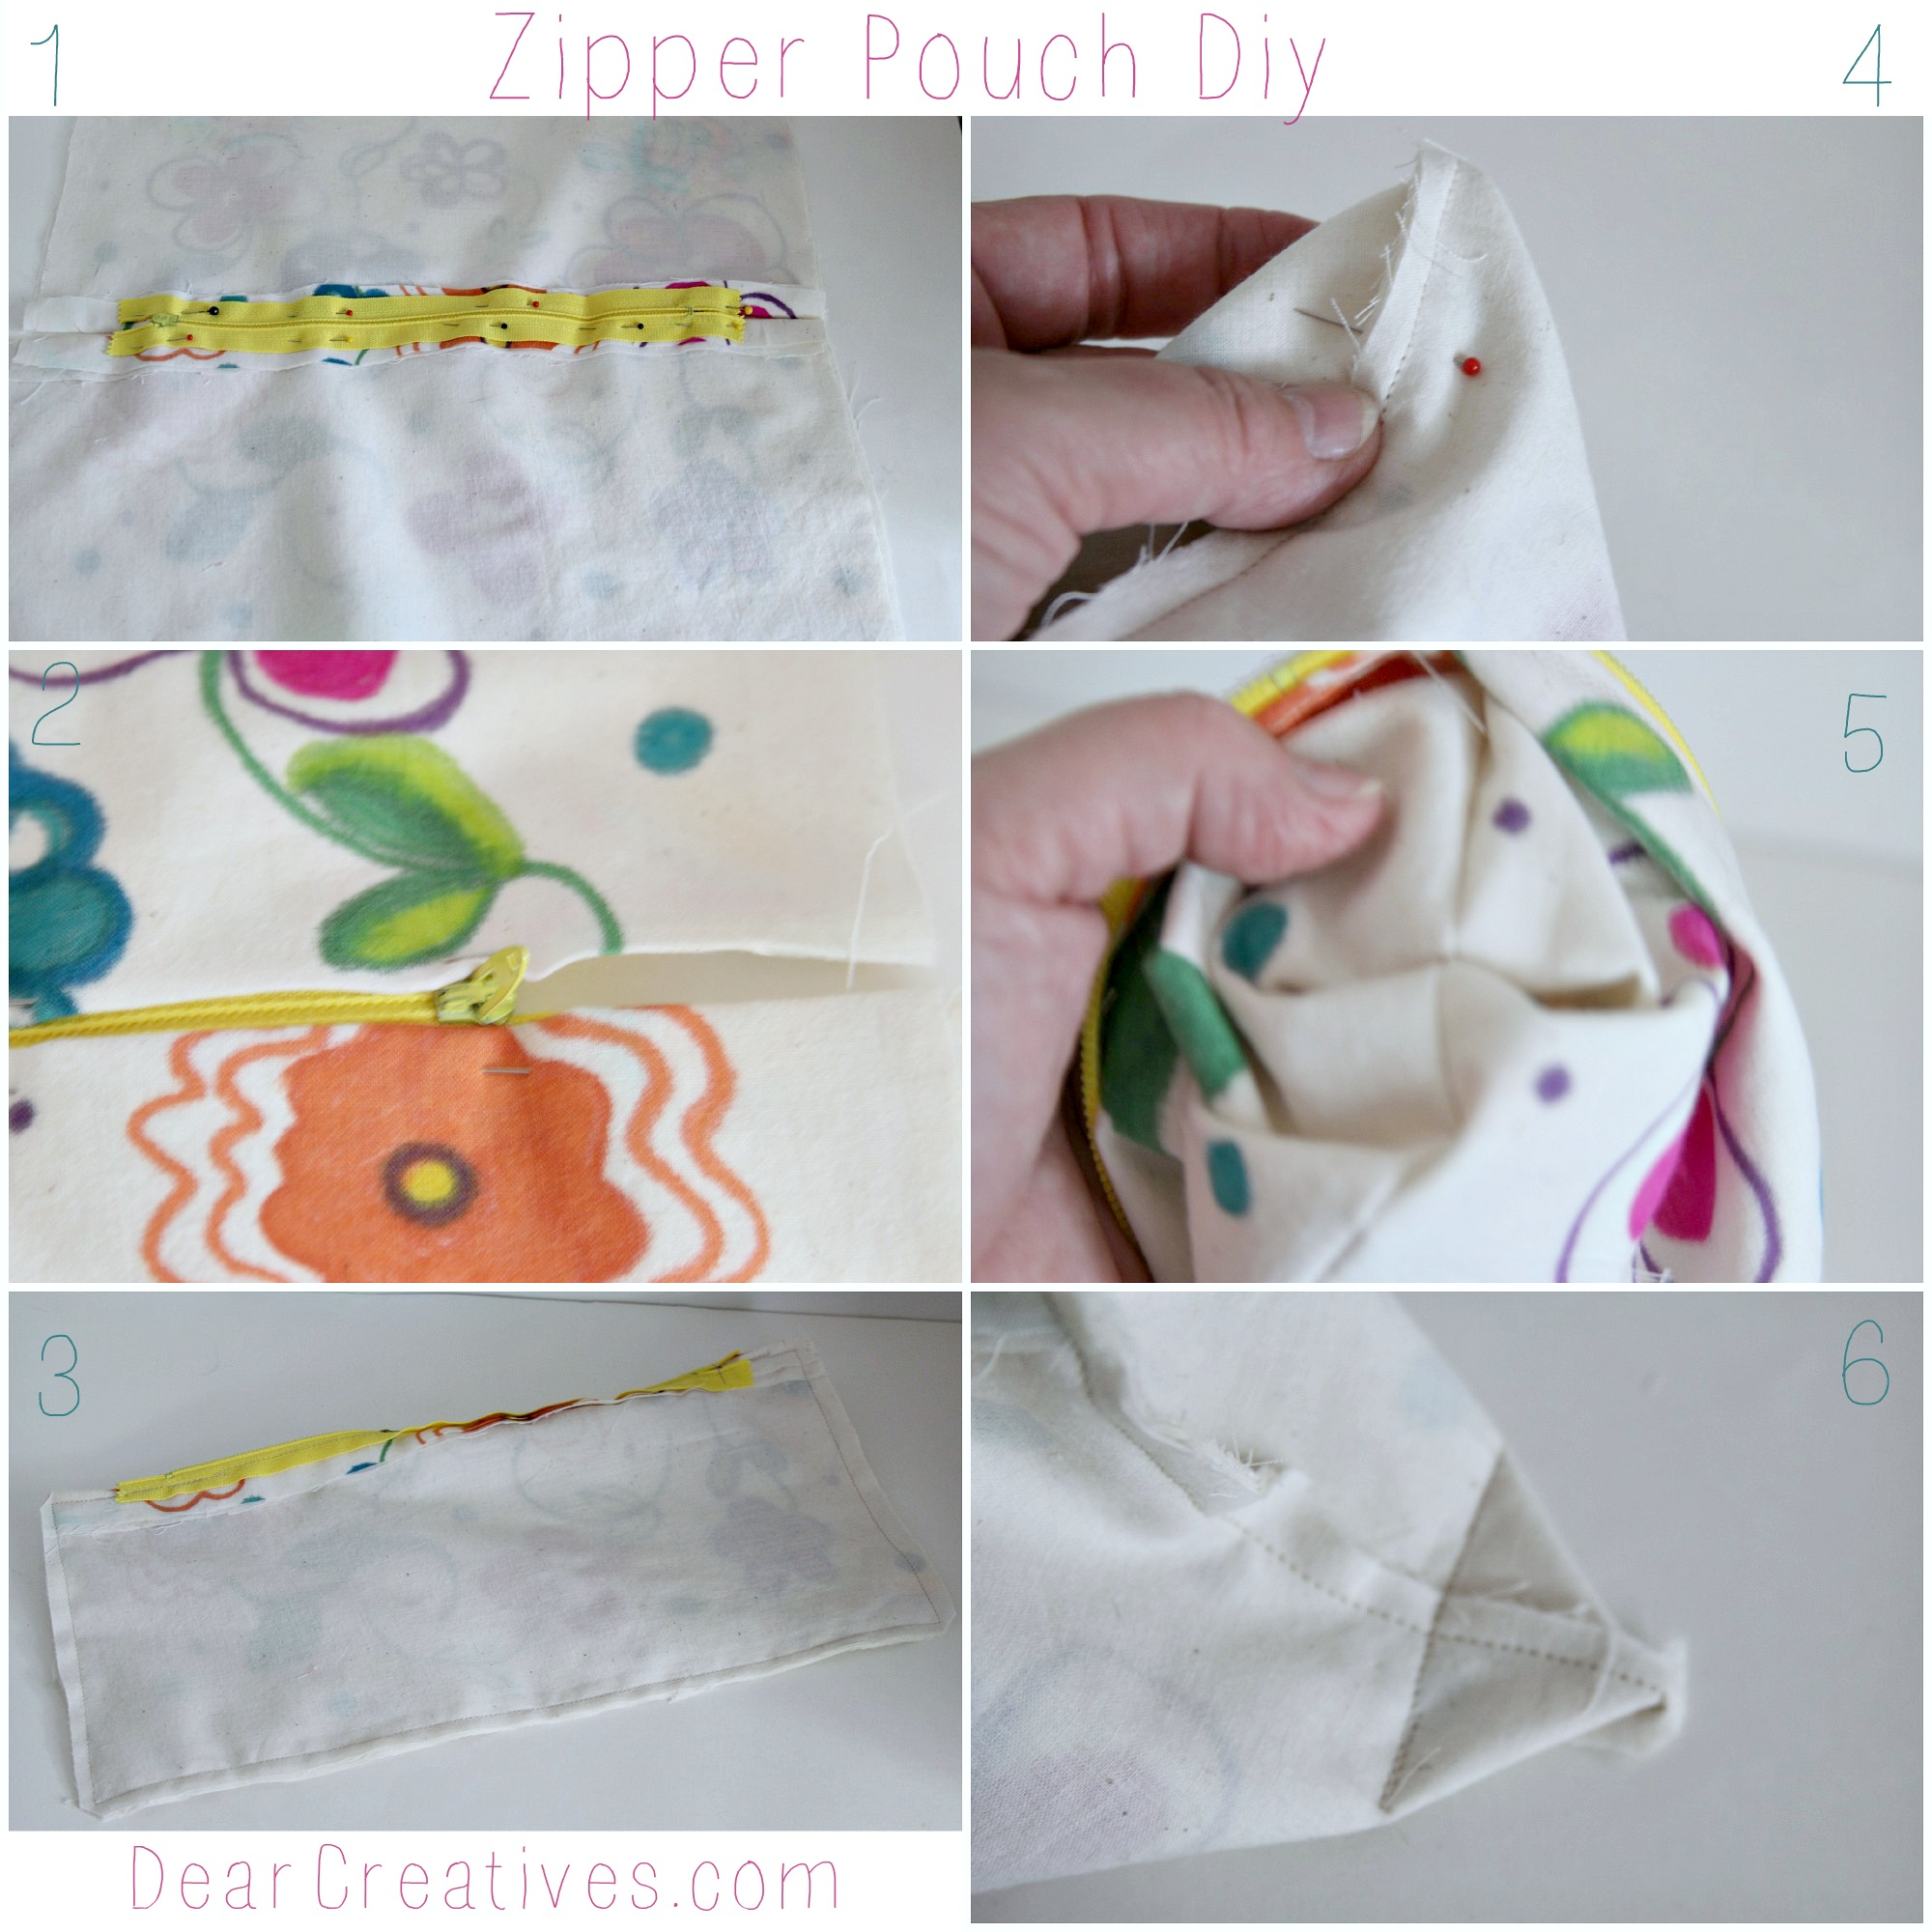 Step By Step zipper Pouch, DearCreatives.com © 2013 Theresa Huse